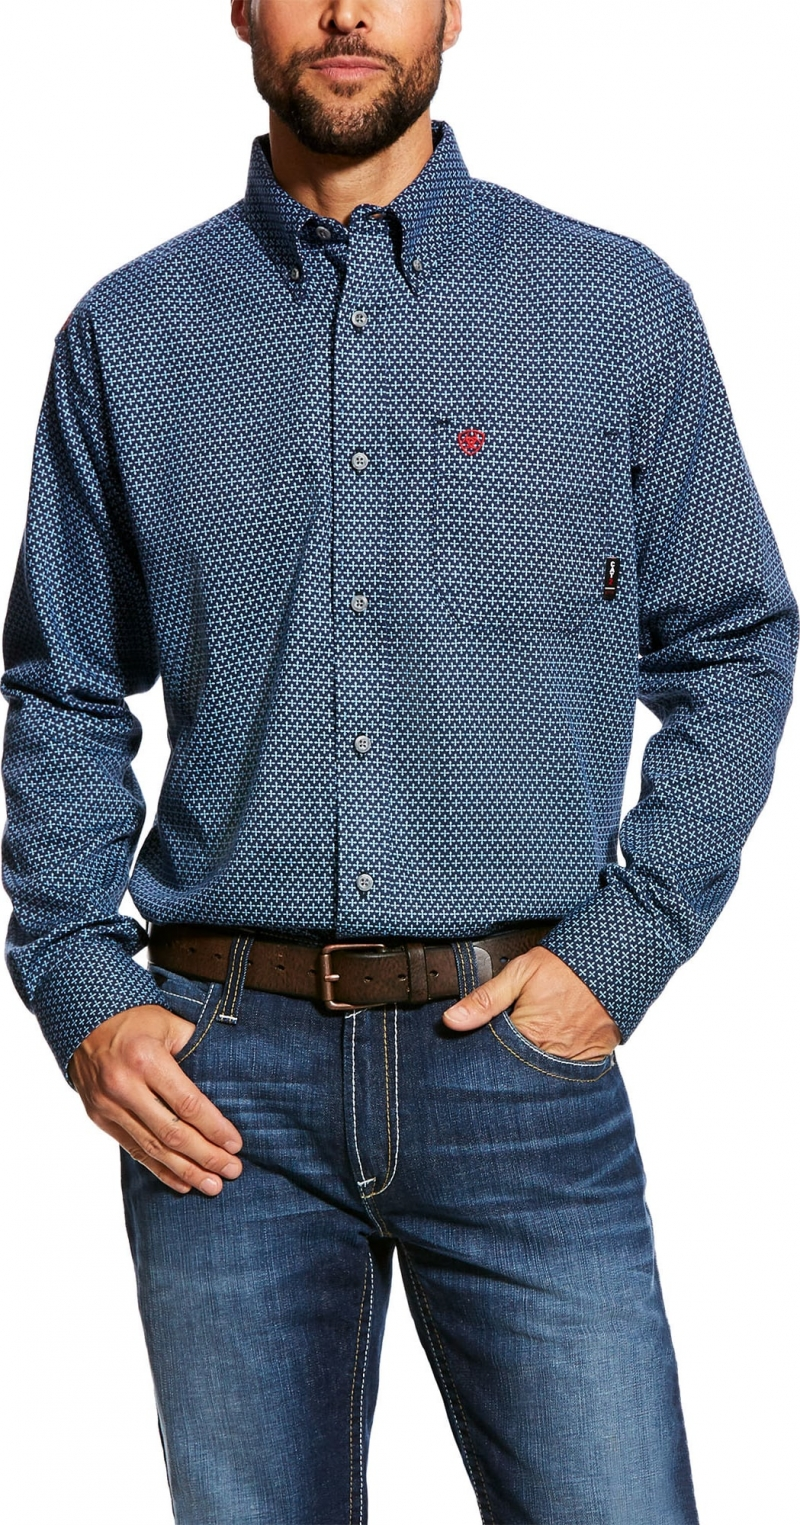 Ariat FR Button Front Dunbar Work Shirt - Navy